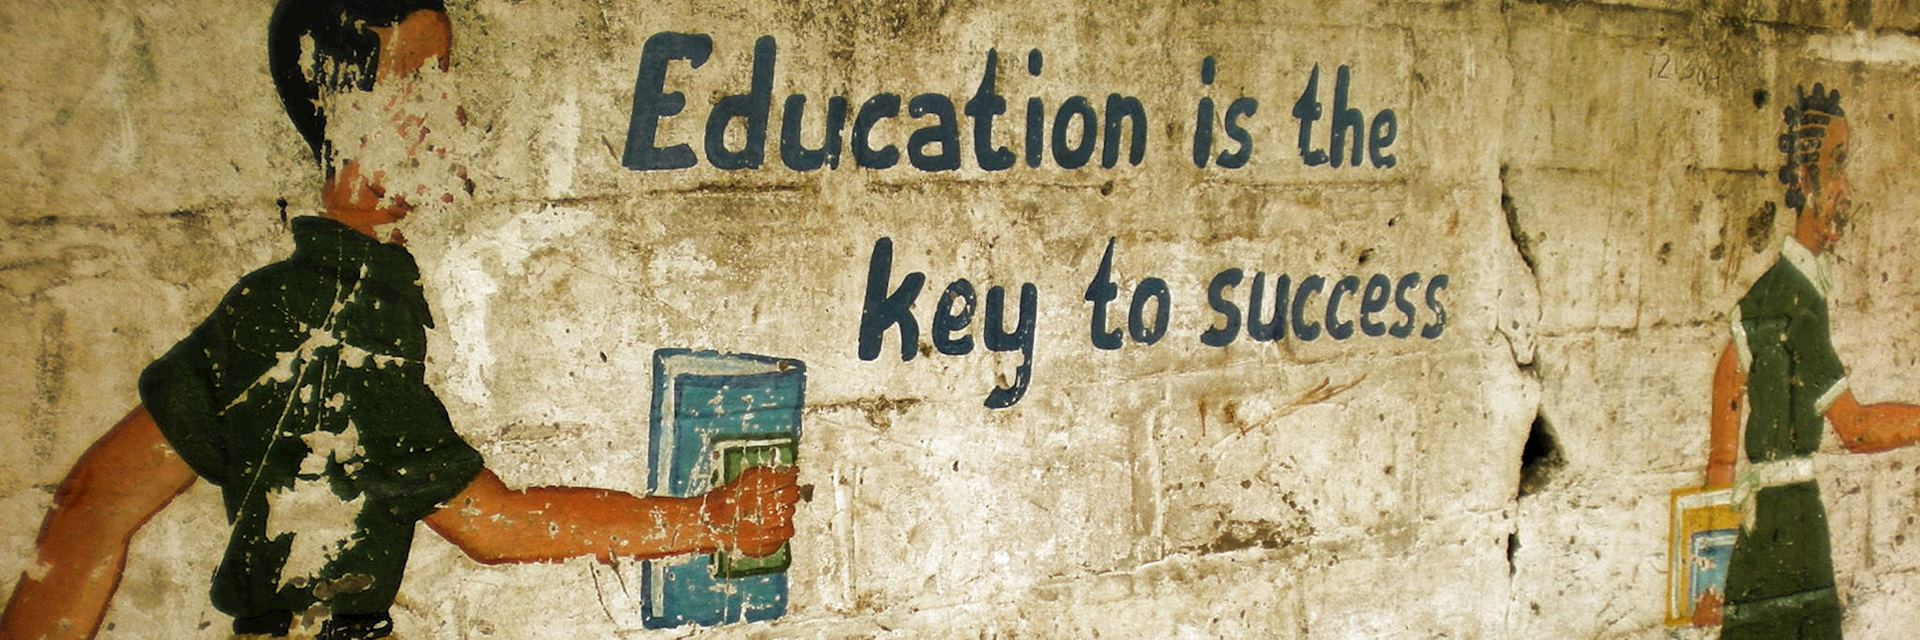 A mural in Africa highlighting the importance of education